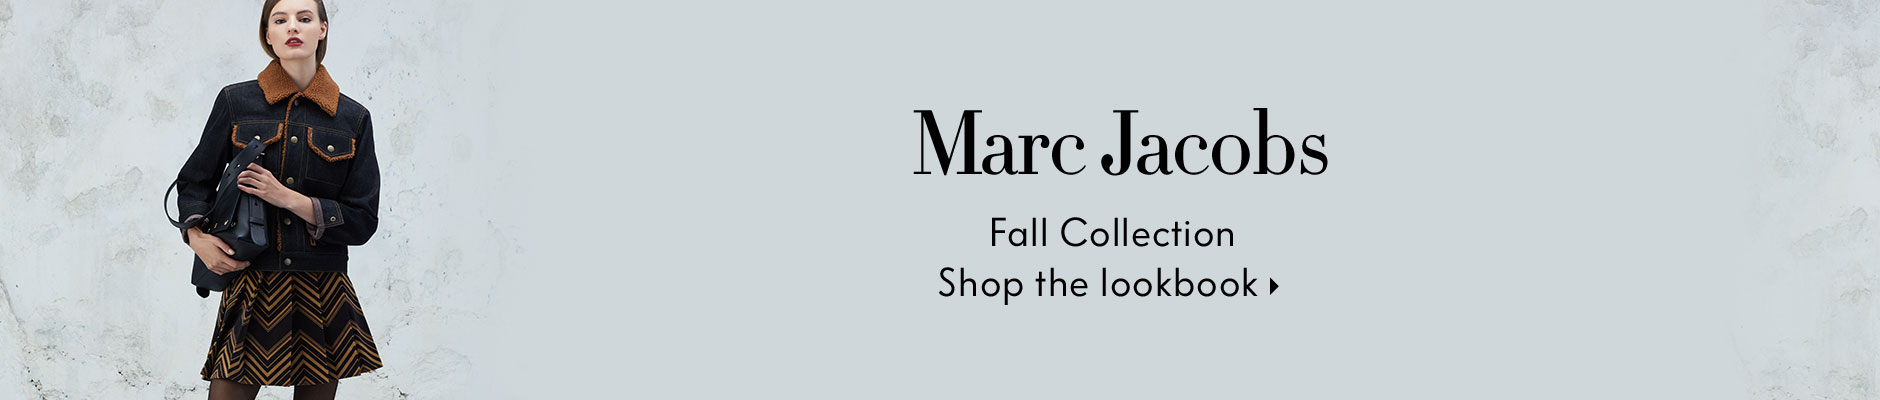 Marc Jacobs Lookbook